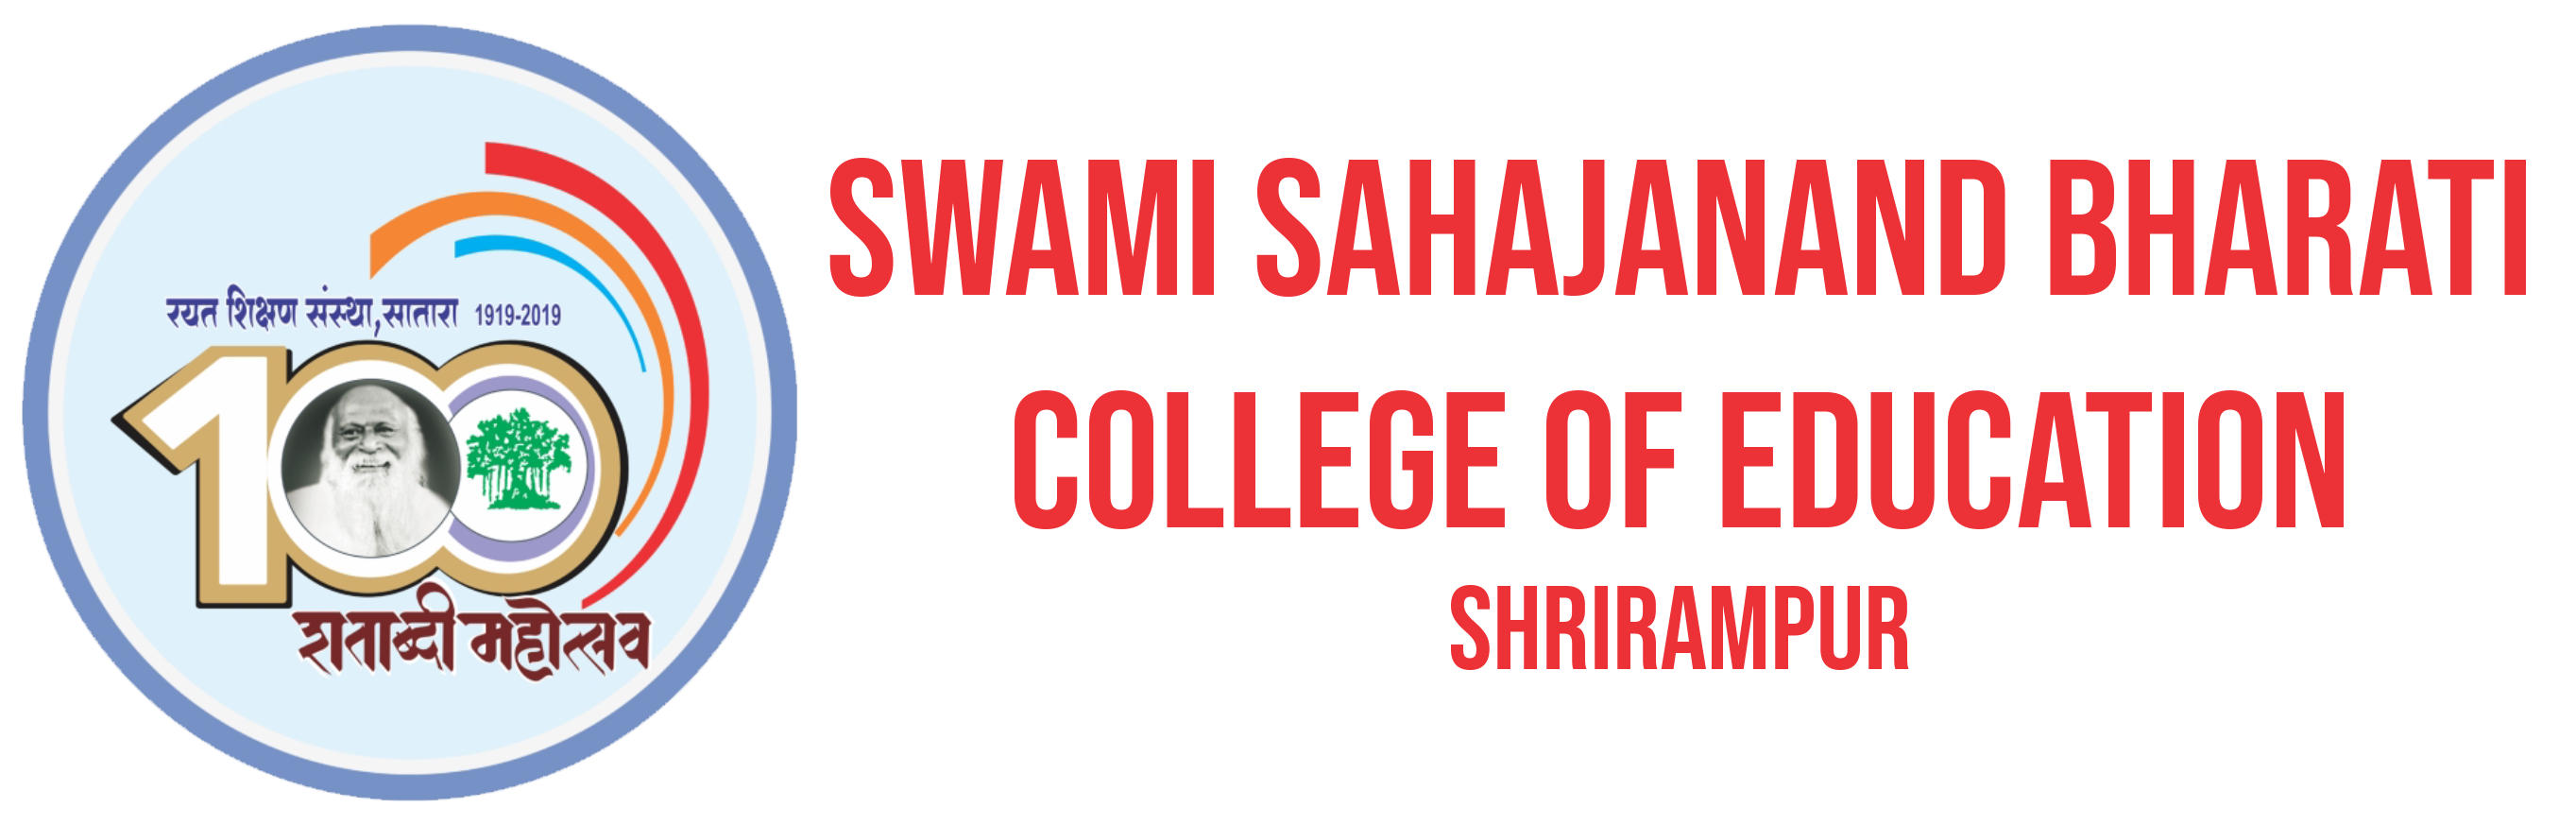 Best B.Ed and M.A college in Shrirampur, Ahmednagar Maharashtra